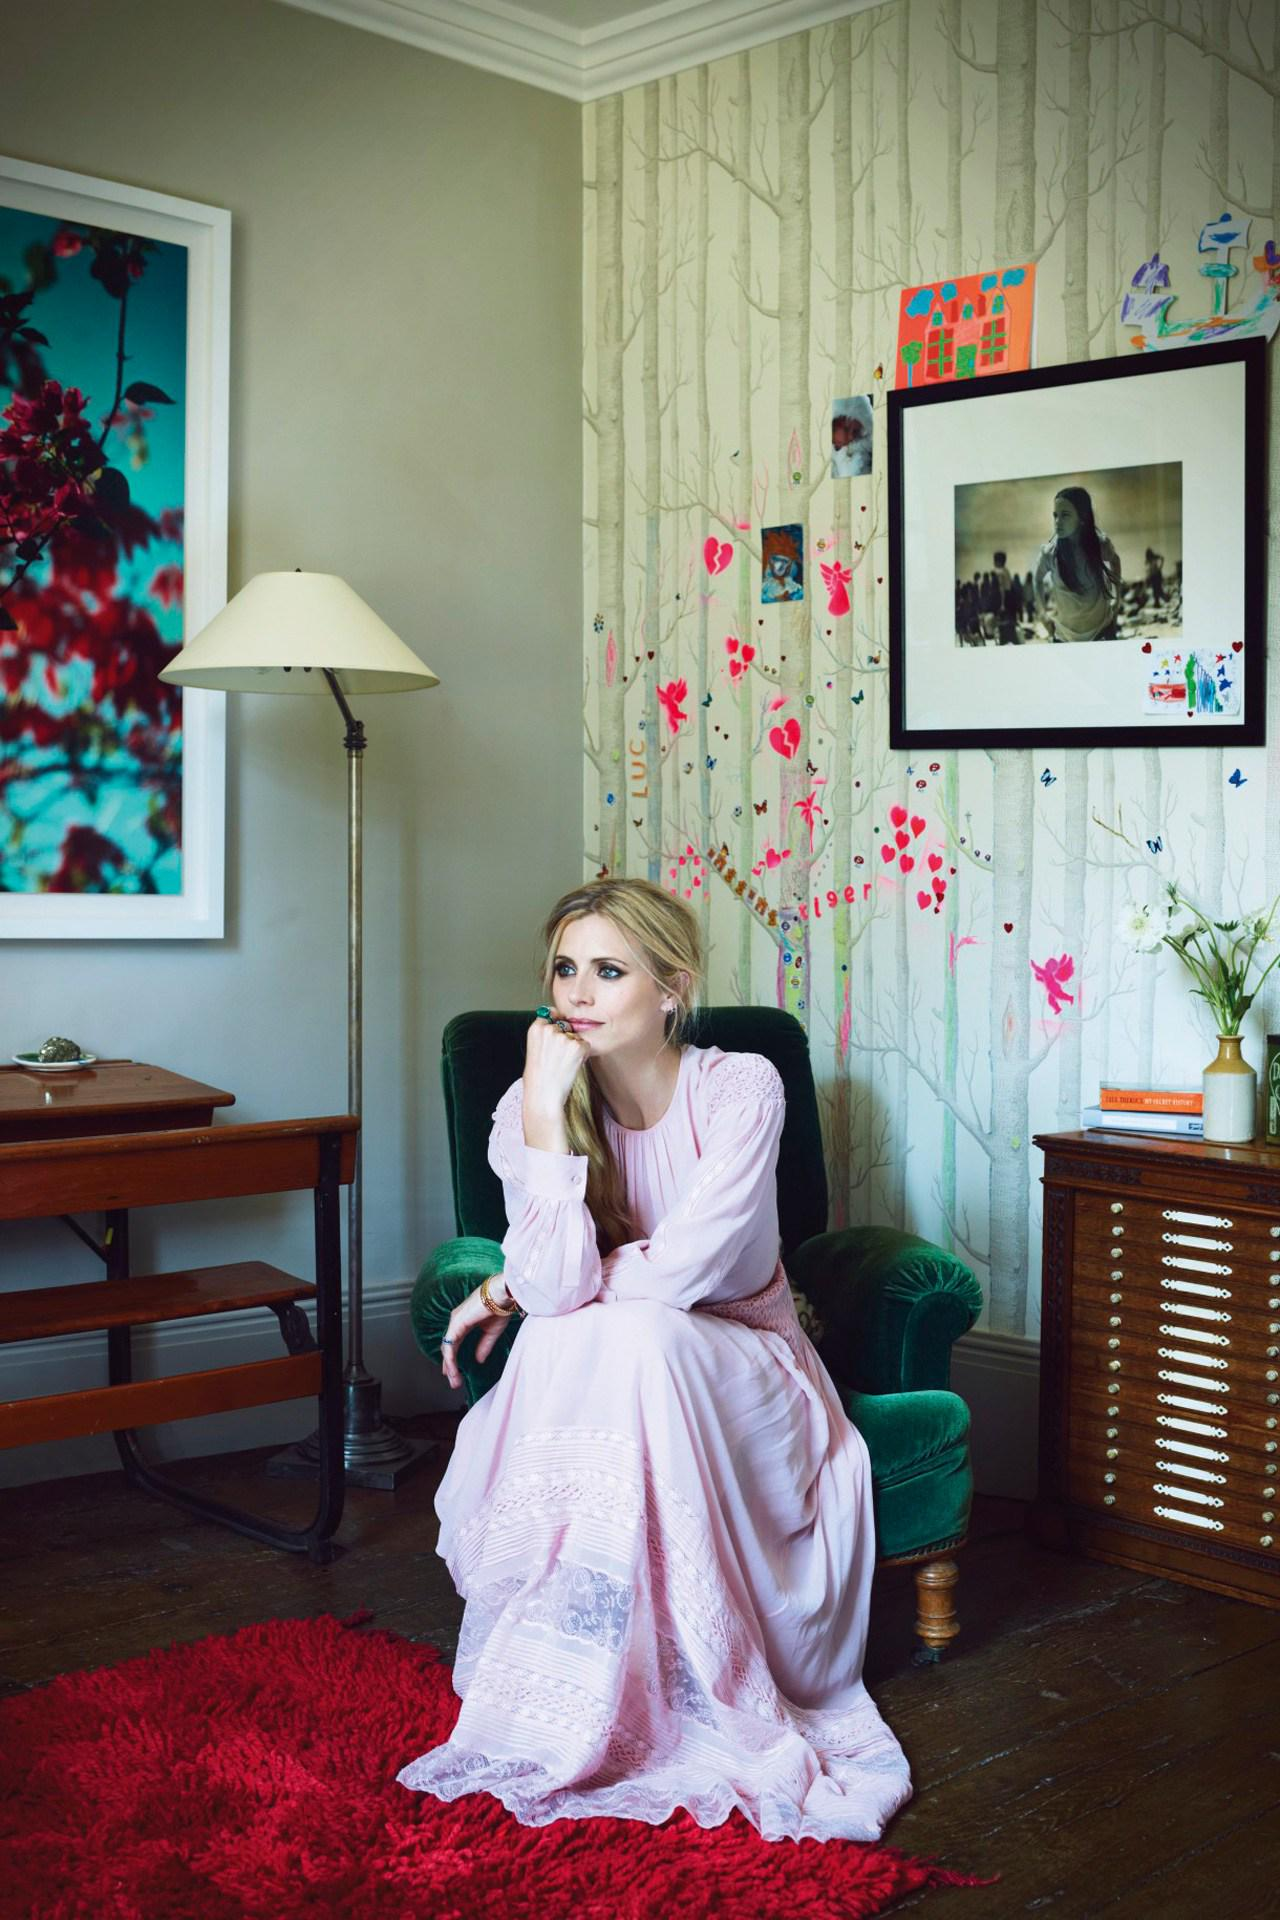 At home with @laurabailey_uk - join Vogue for a tour: http://t.co/EpUUeQE6eO http://t.co/hcklyHazd8